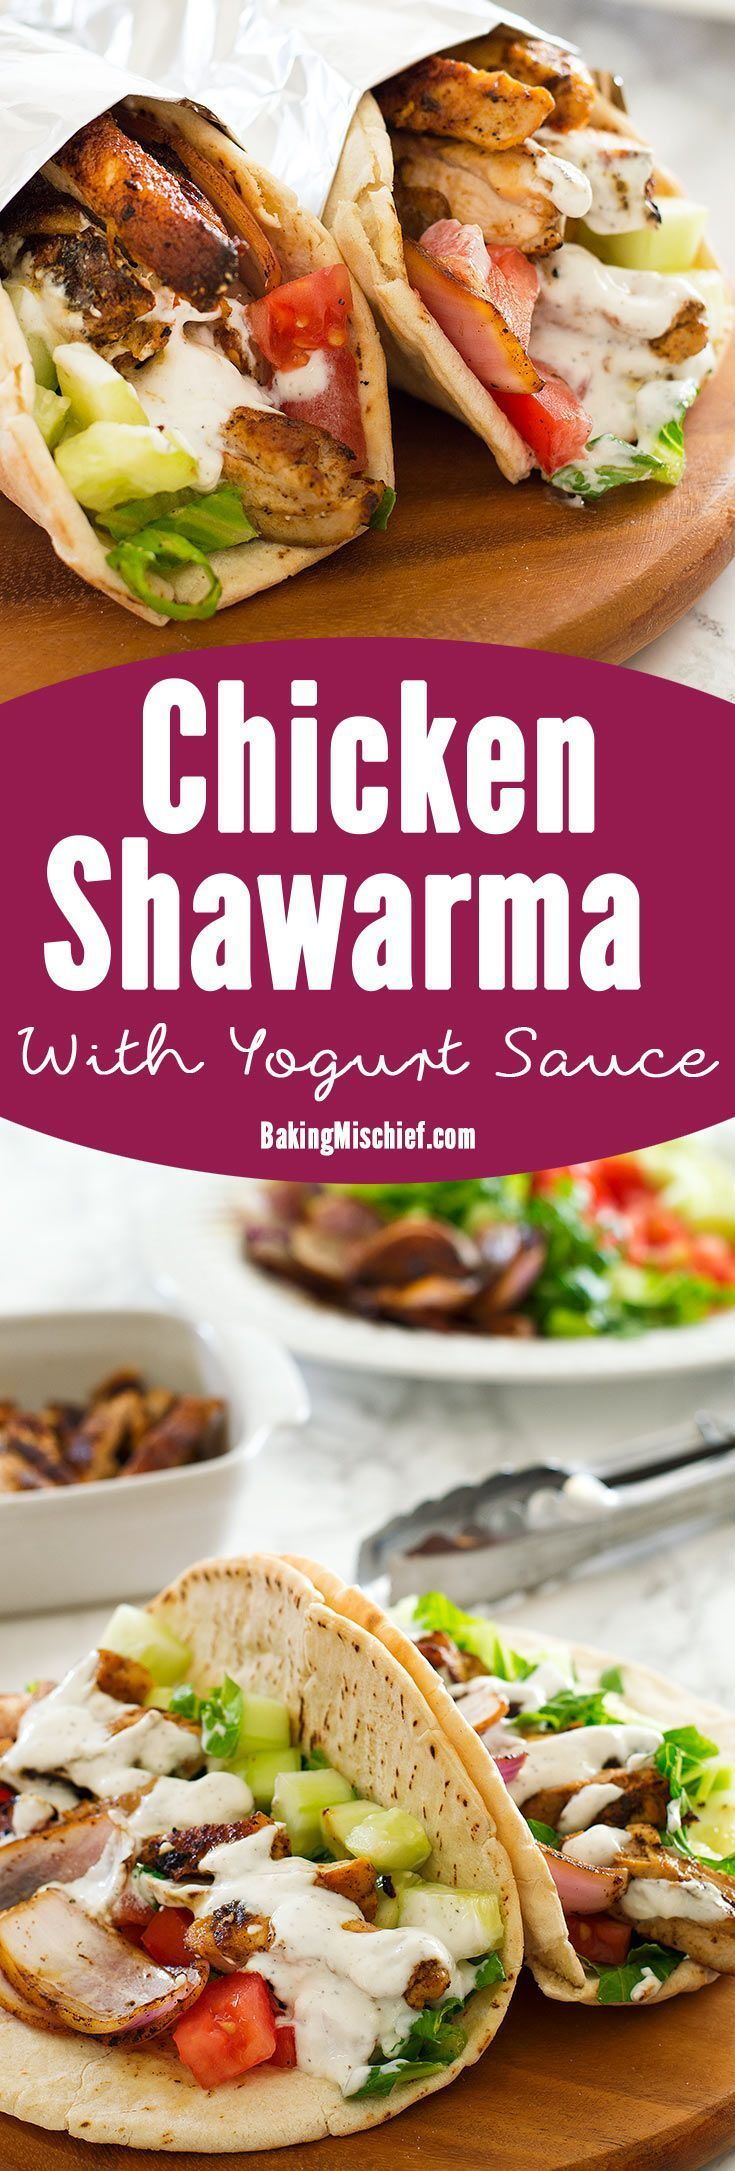 A simple chicken shawarma recipe with tender, smokey and flavorful chicken and a salty, garlic and lemon yogurt sauce served over crisp veggies and warm pita bread. Recipe includes nutritional information plus recipe for two, make-ahead, and freezer instructions.